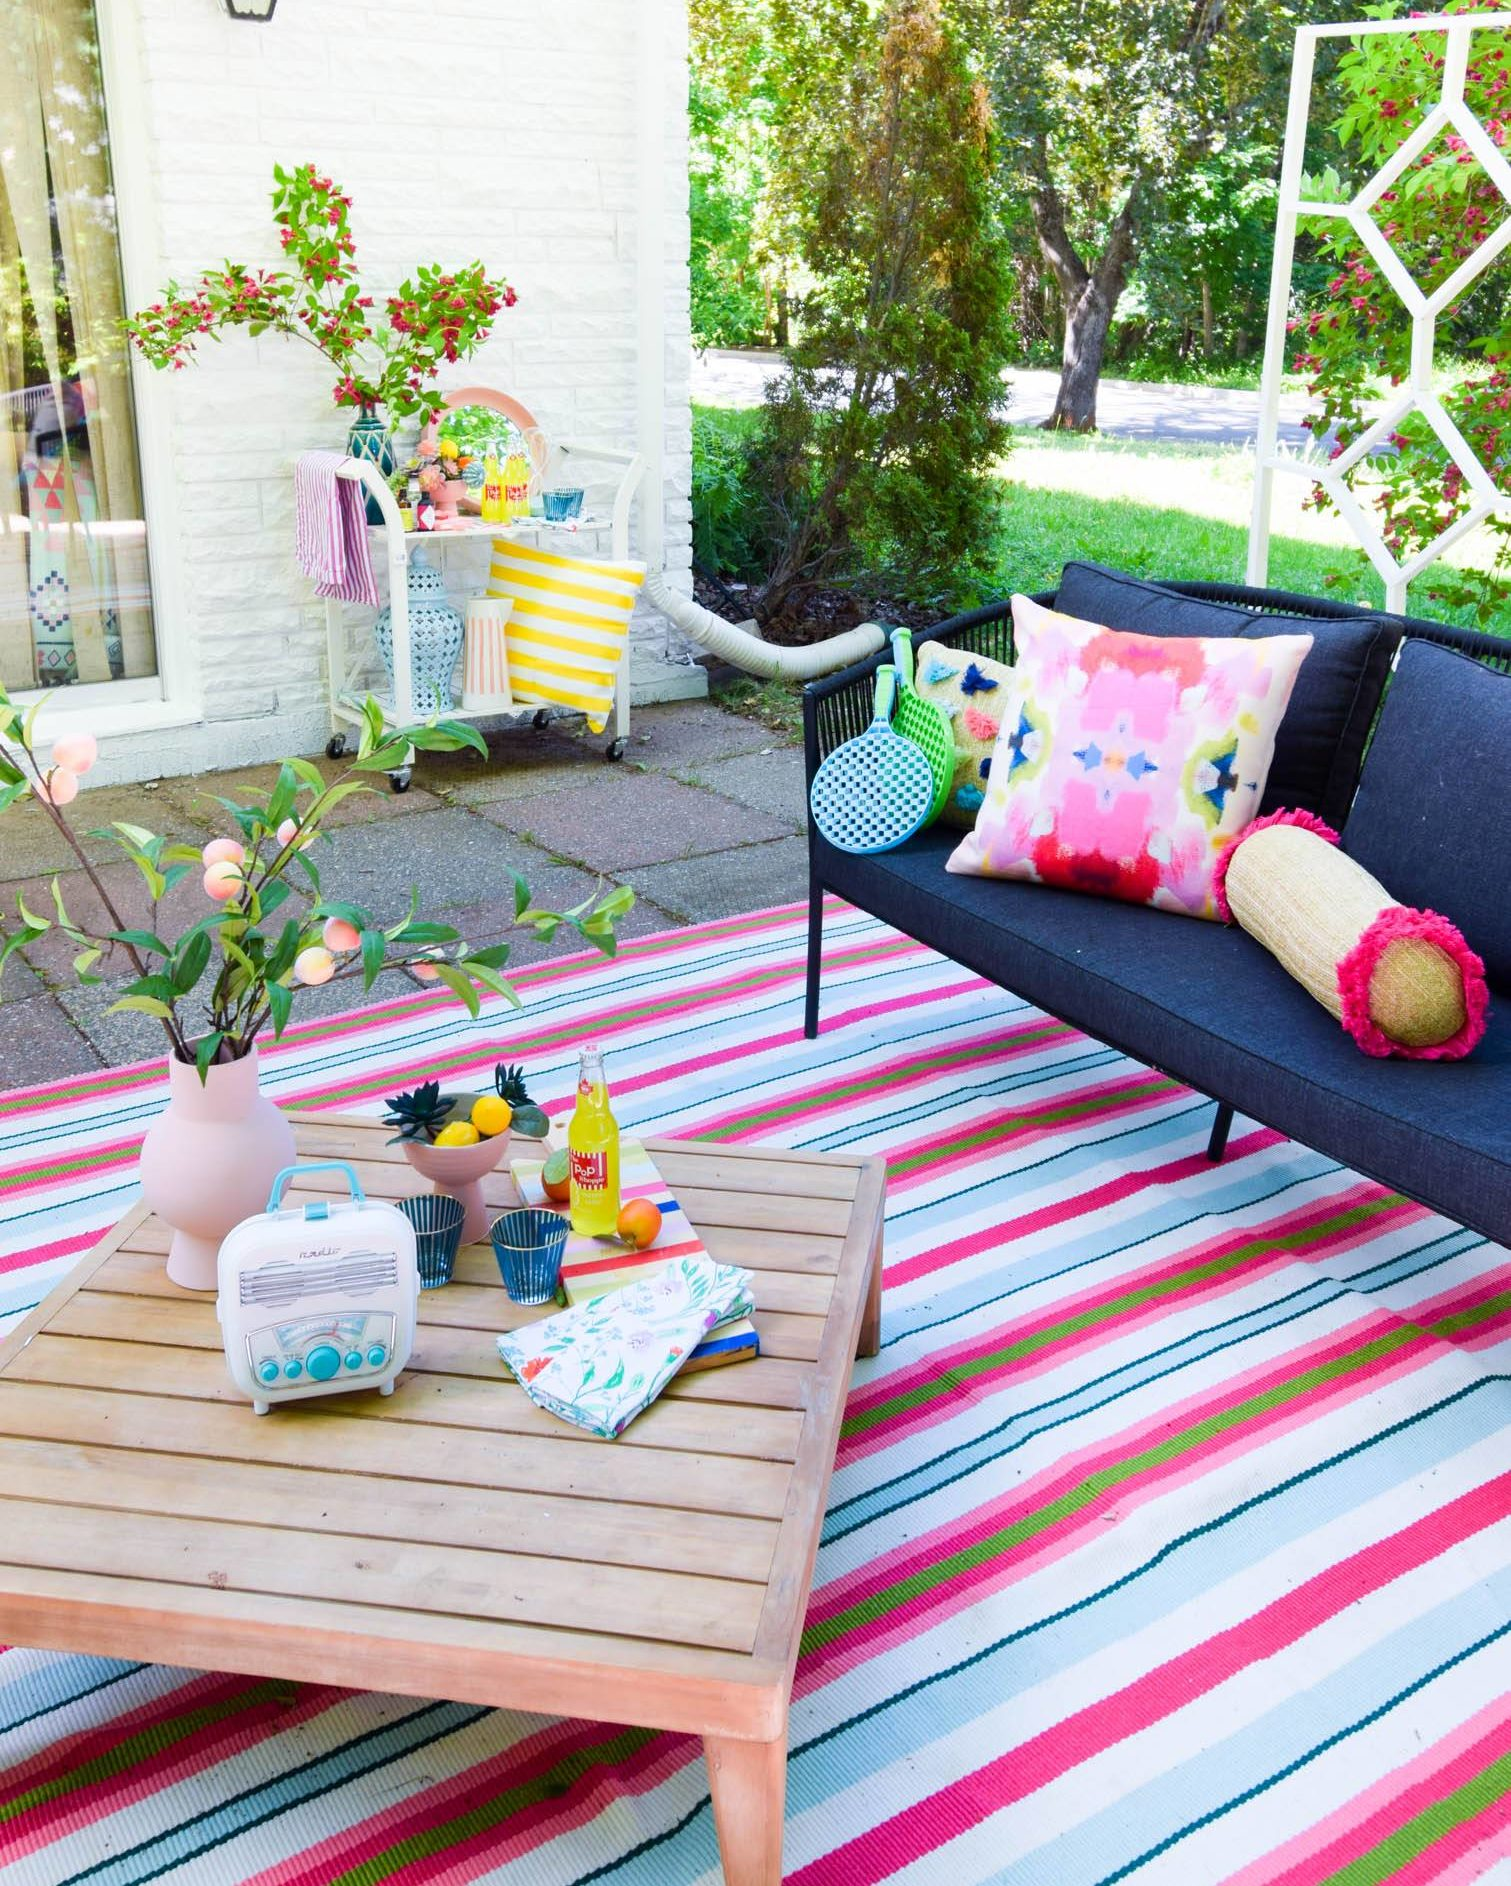 Pink and Green Striped Outdoor Area Rug Chic Patio Furniture Crate Table